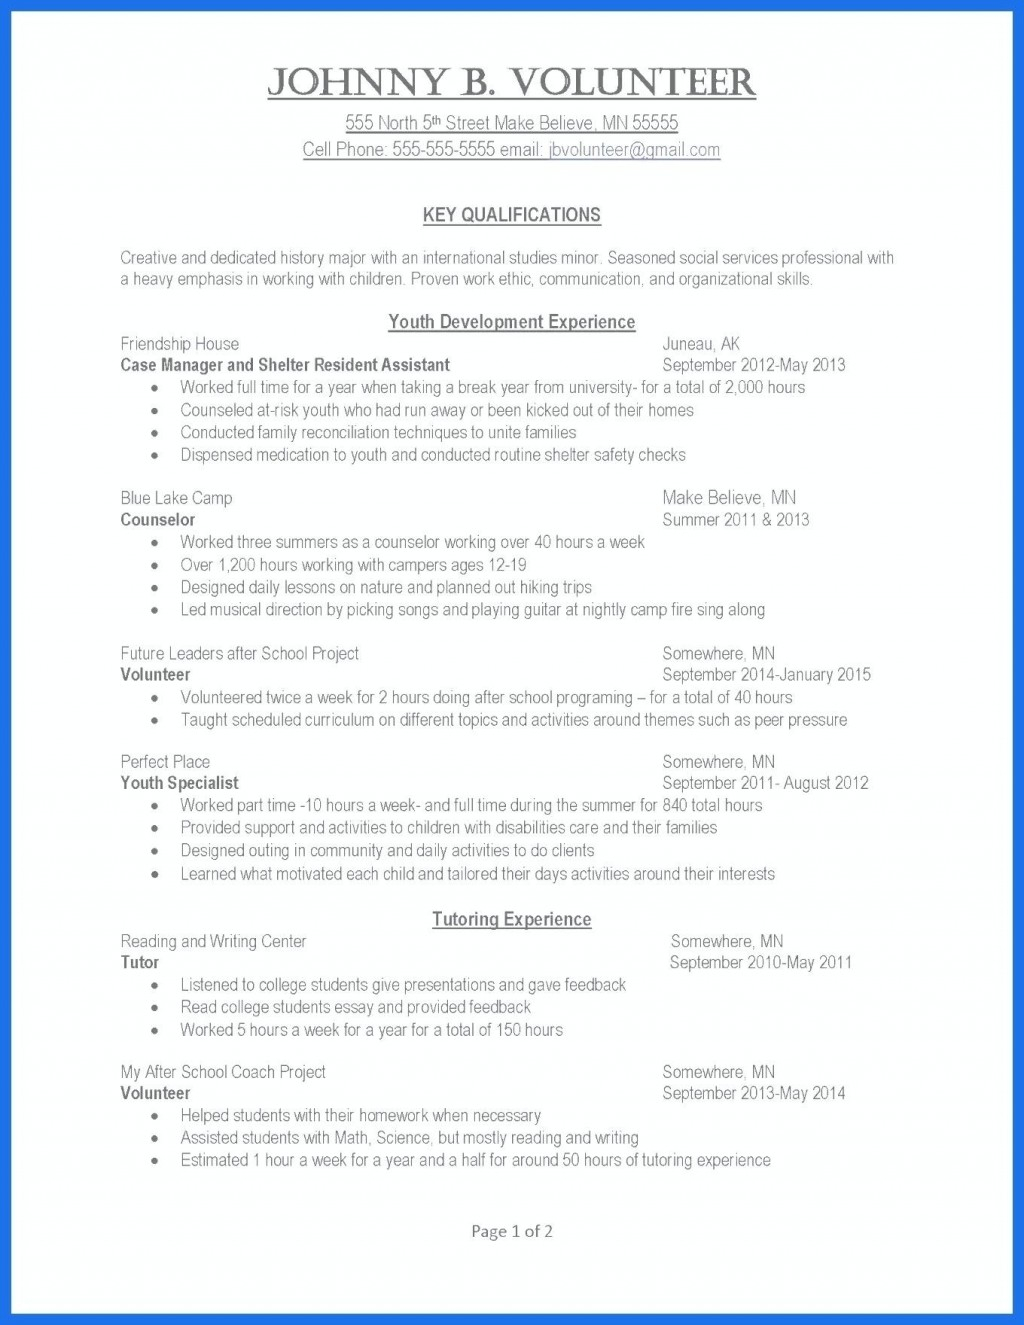 030 Budget Worksheet Commercial Construction 20Project inside Summer Camp Schedule Template